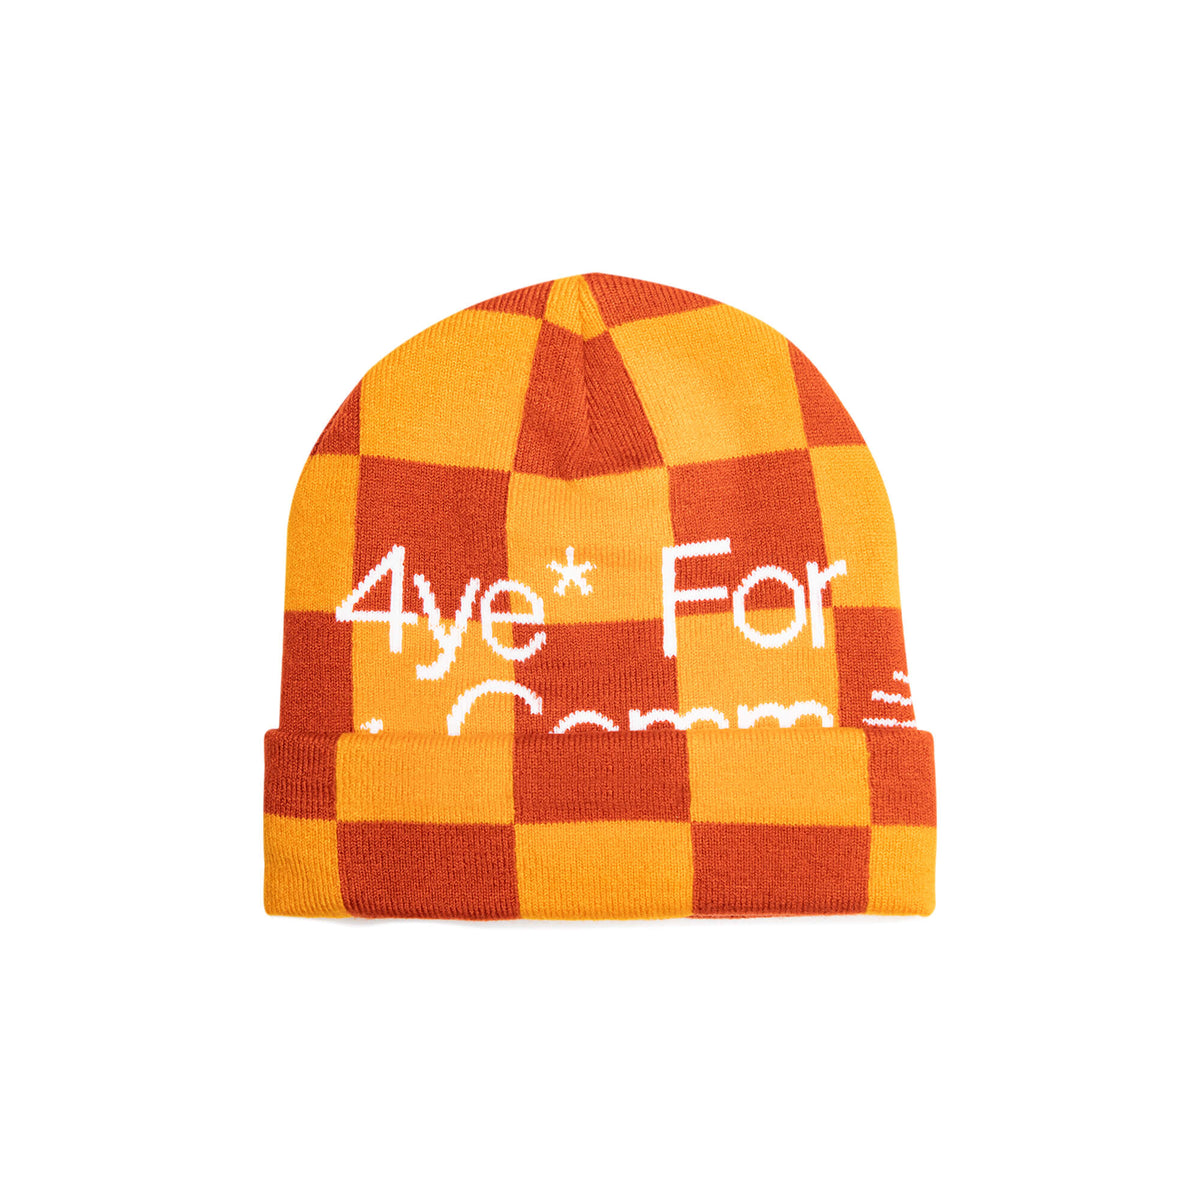 Orange beanie with white text black owned business